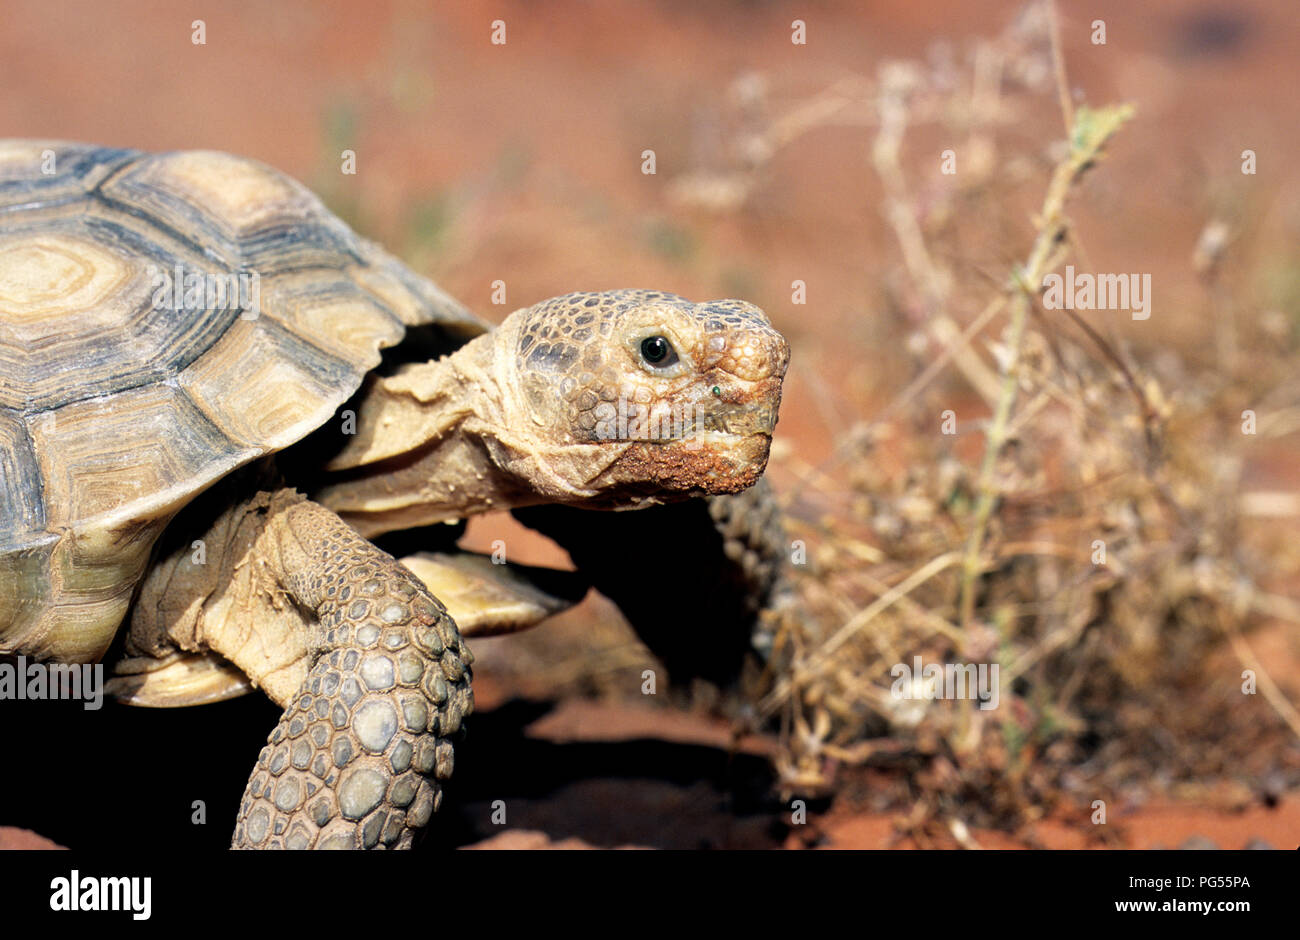 Desert tortoise (Gopherus agassizii) at Red Cliffs Desert Reserve in SW Utah - Stock Image